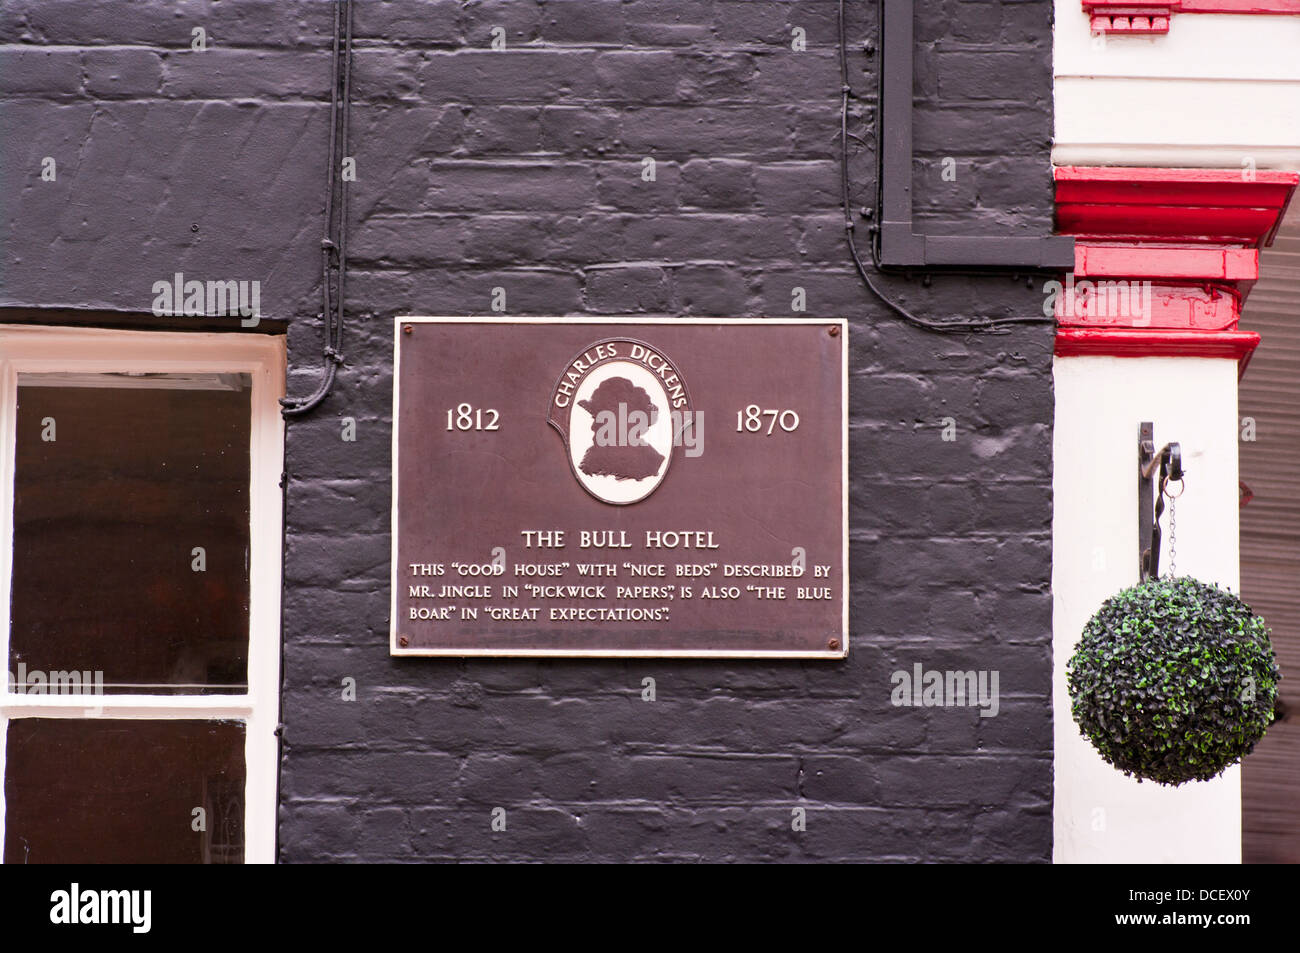 Plaque On The Bull Hotel Rochester Kent UK Celebrating that the Building was mentioned In Great Expectations and - Stock Image